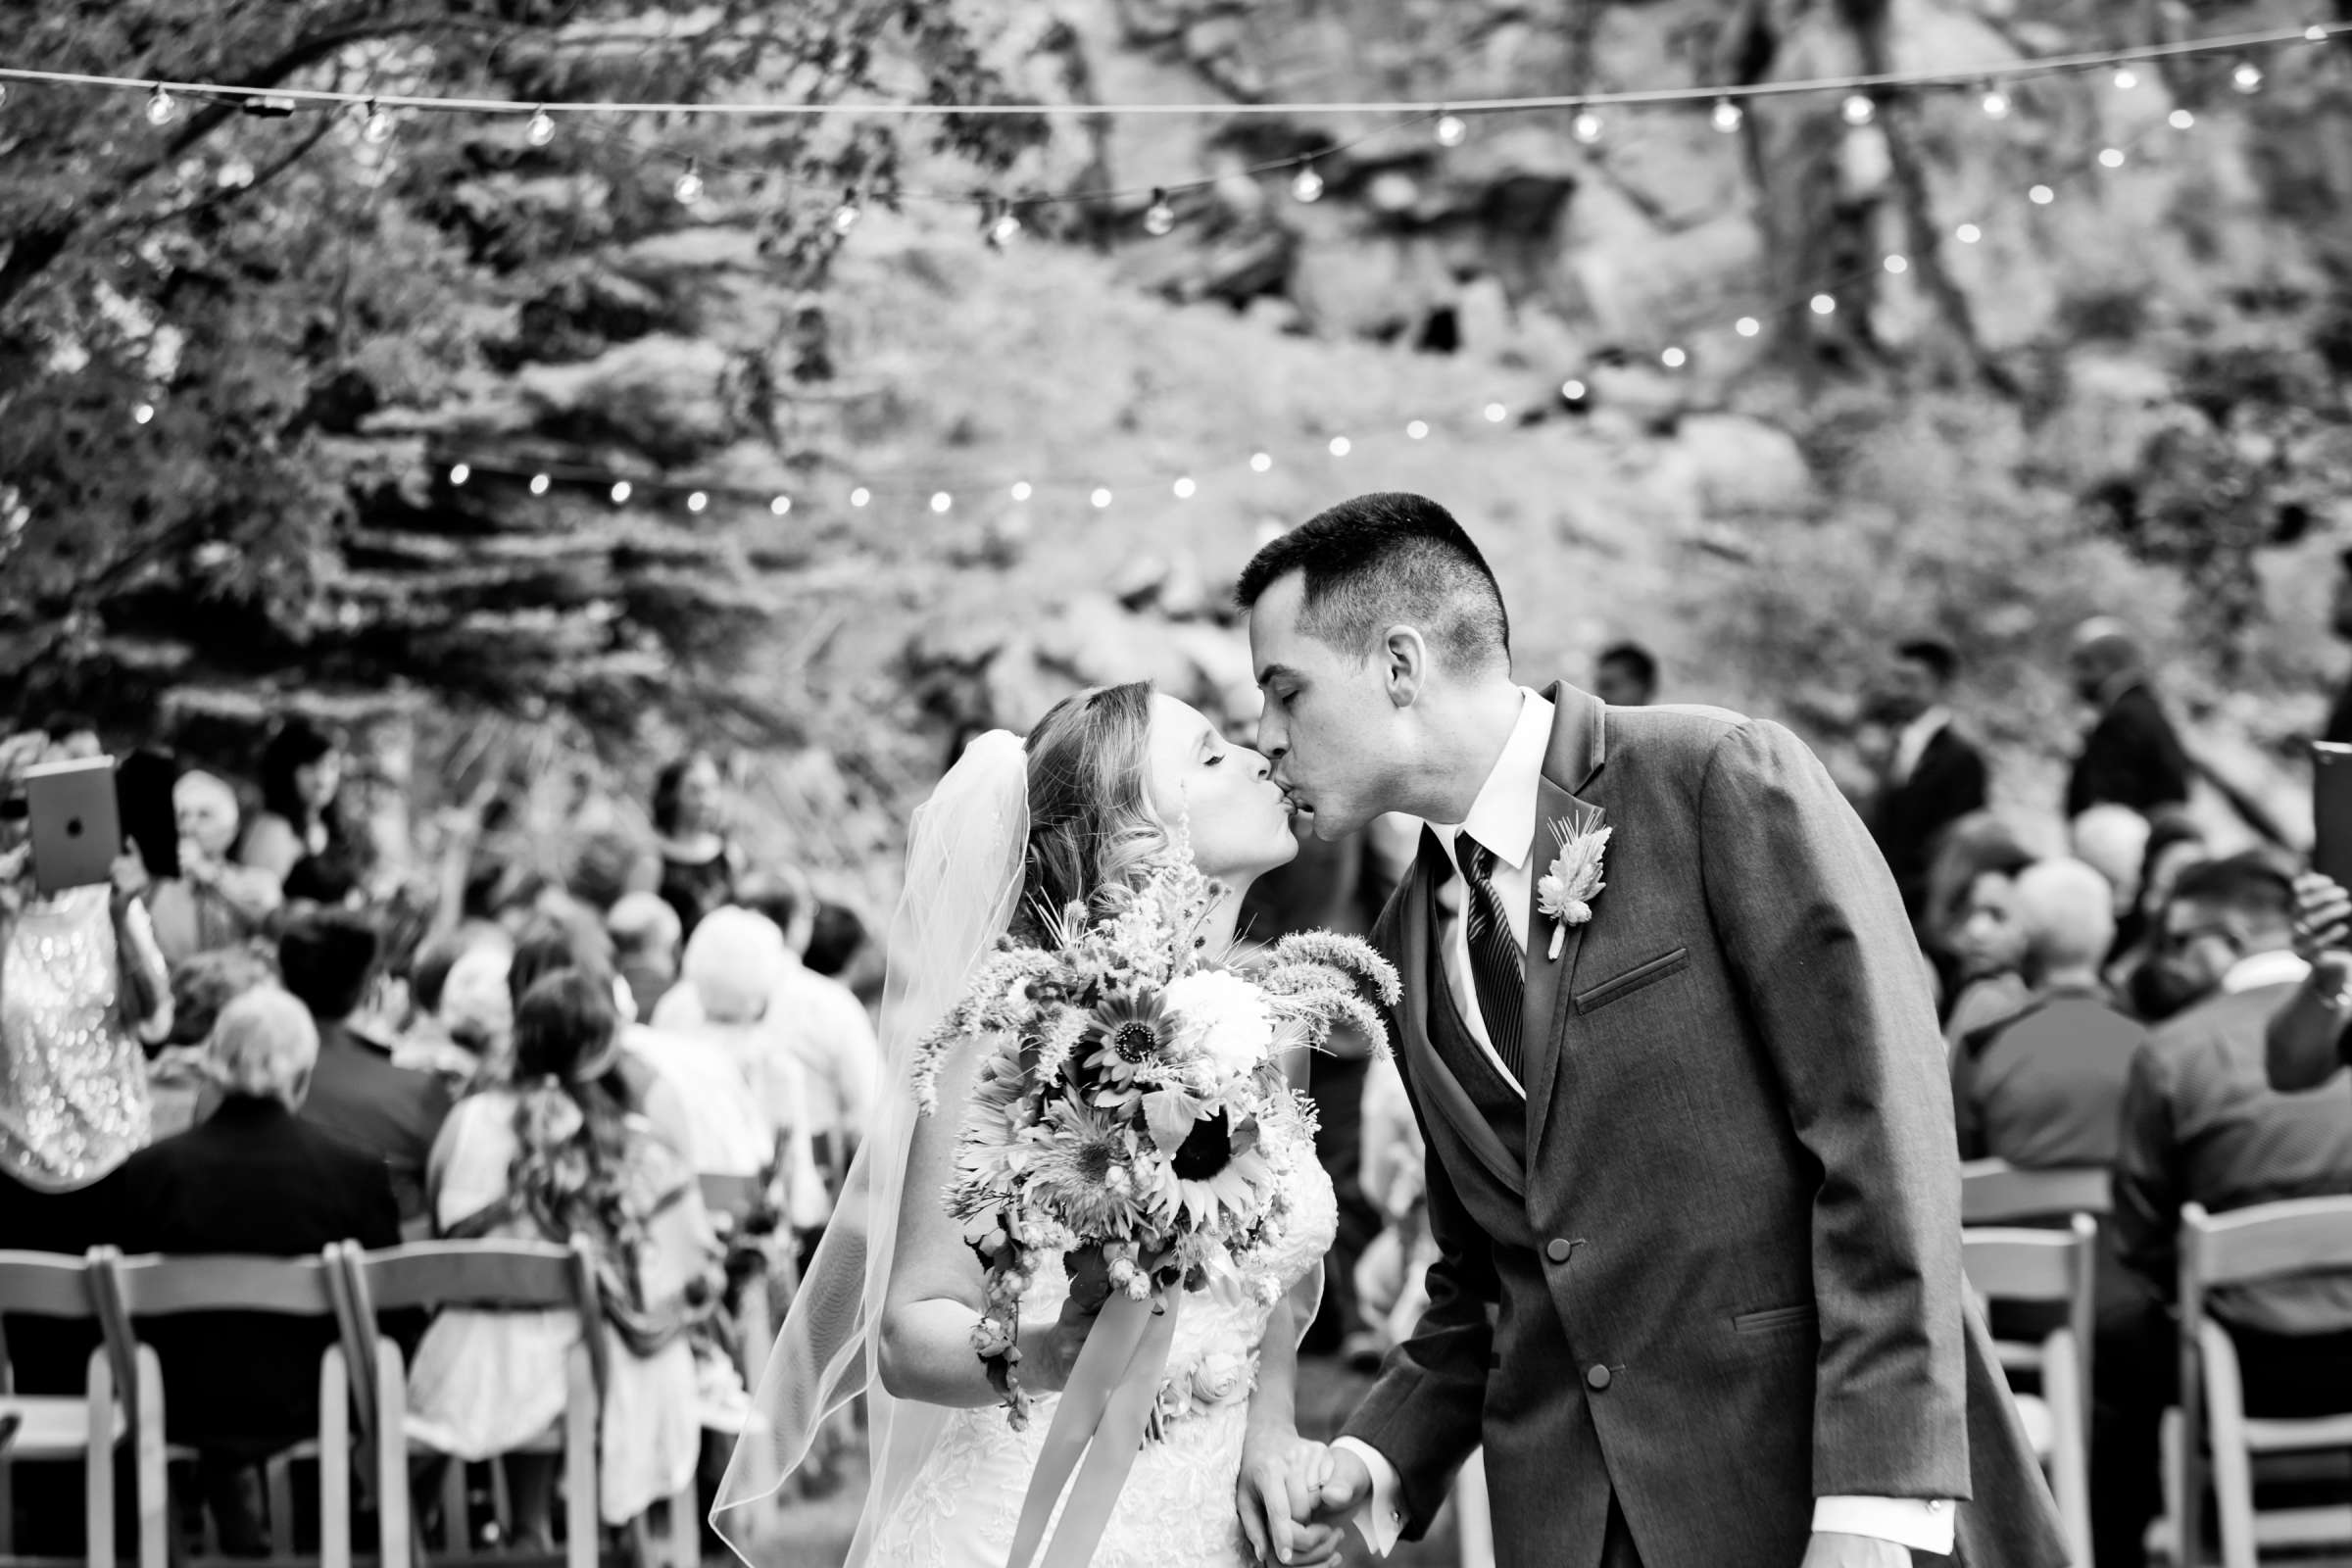 The Lyons Farmette Wedding, Tiffany and J. Travis Wedding Photo #12 by True Photography